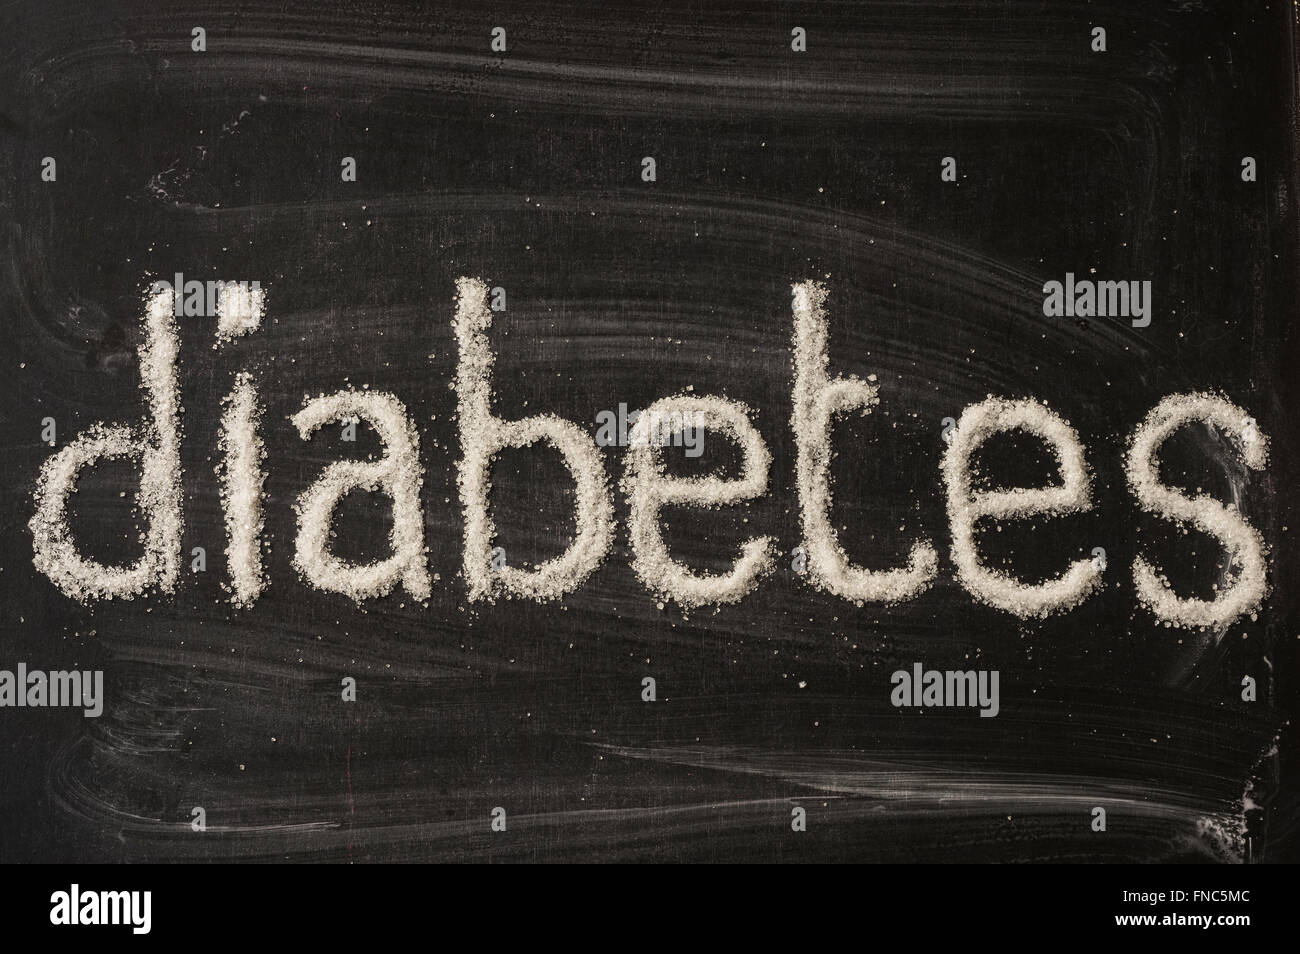 Diabetes word written with sugar on blackboard - Stock Image